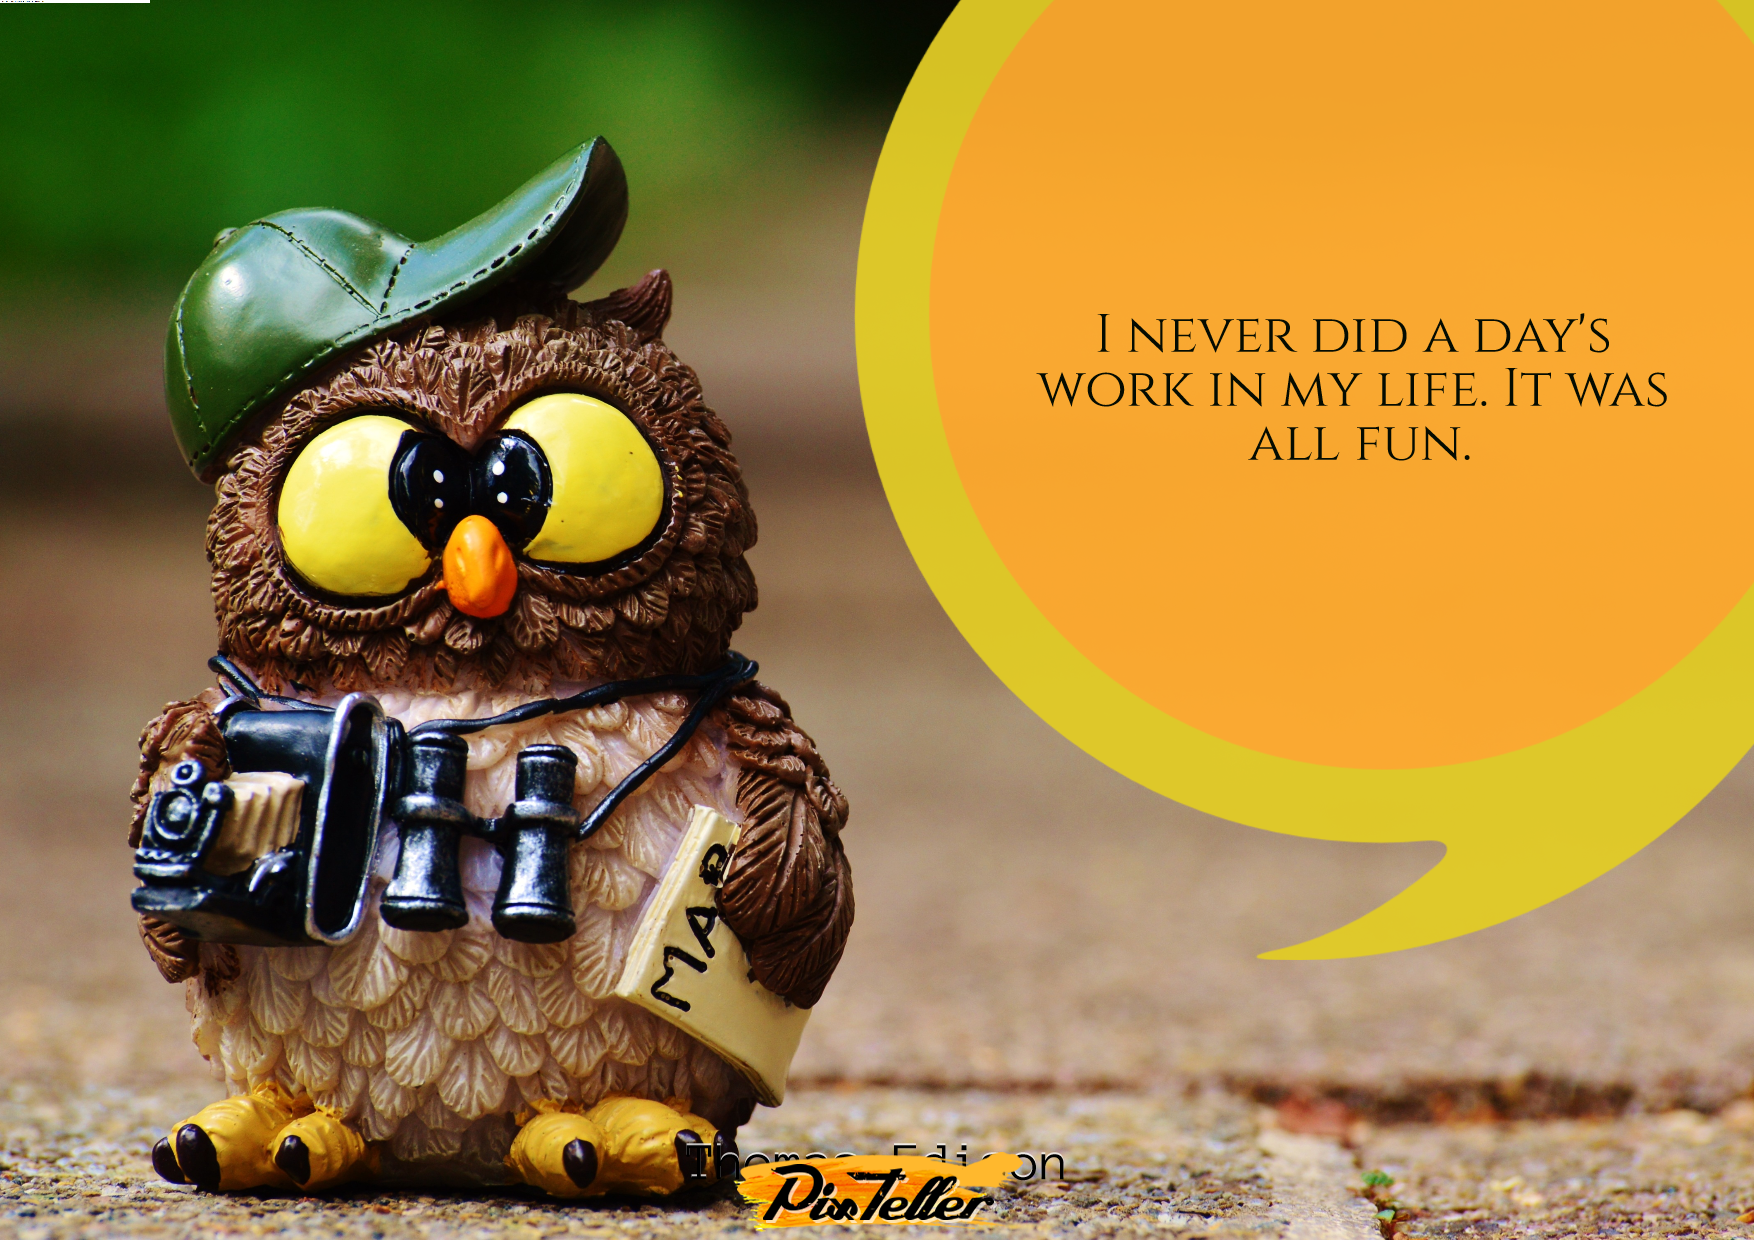 Owl,                Fauna,                Beak,                Photo,                Caption,                Computer,                Wallpaper,                Font,                Funny,                Quote,                Poster,                Avatar,                White,                 Free Image